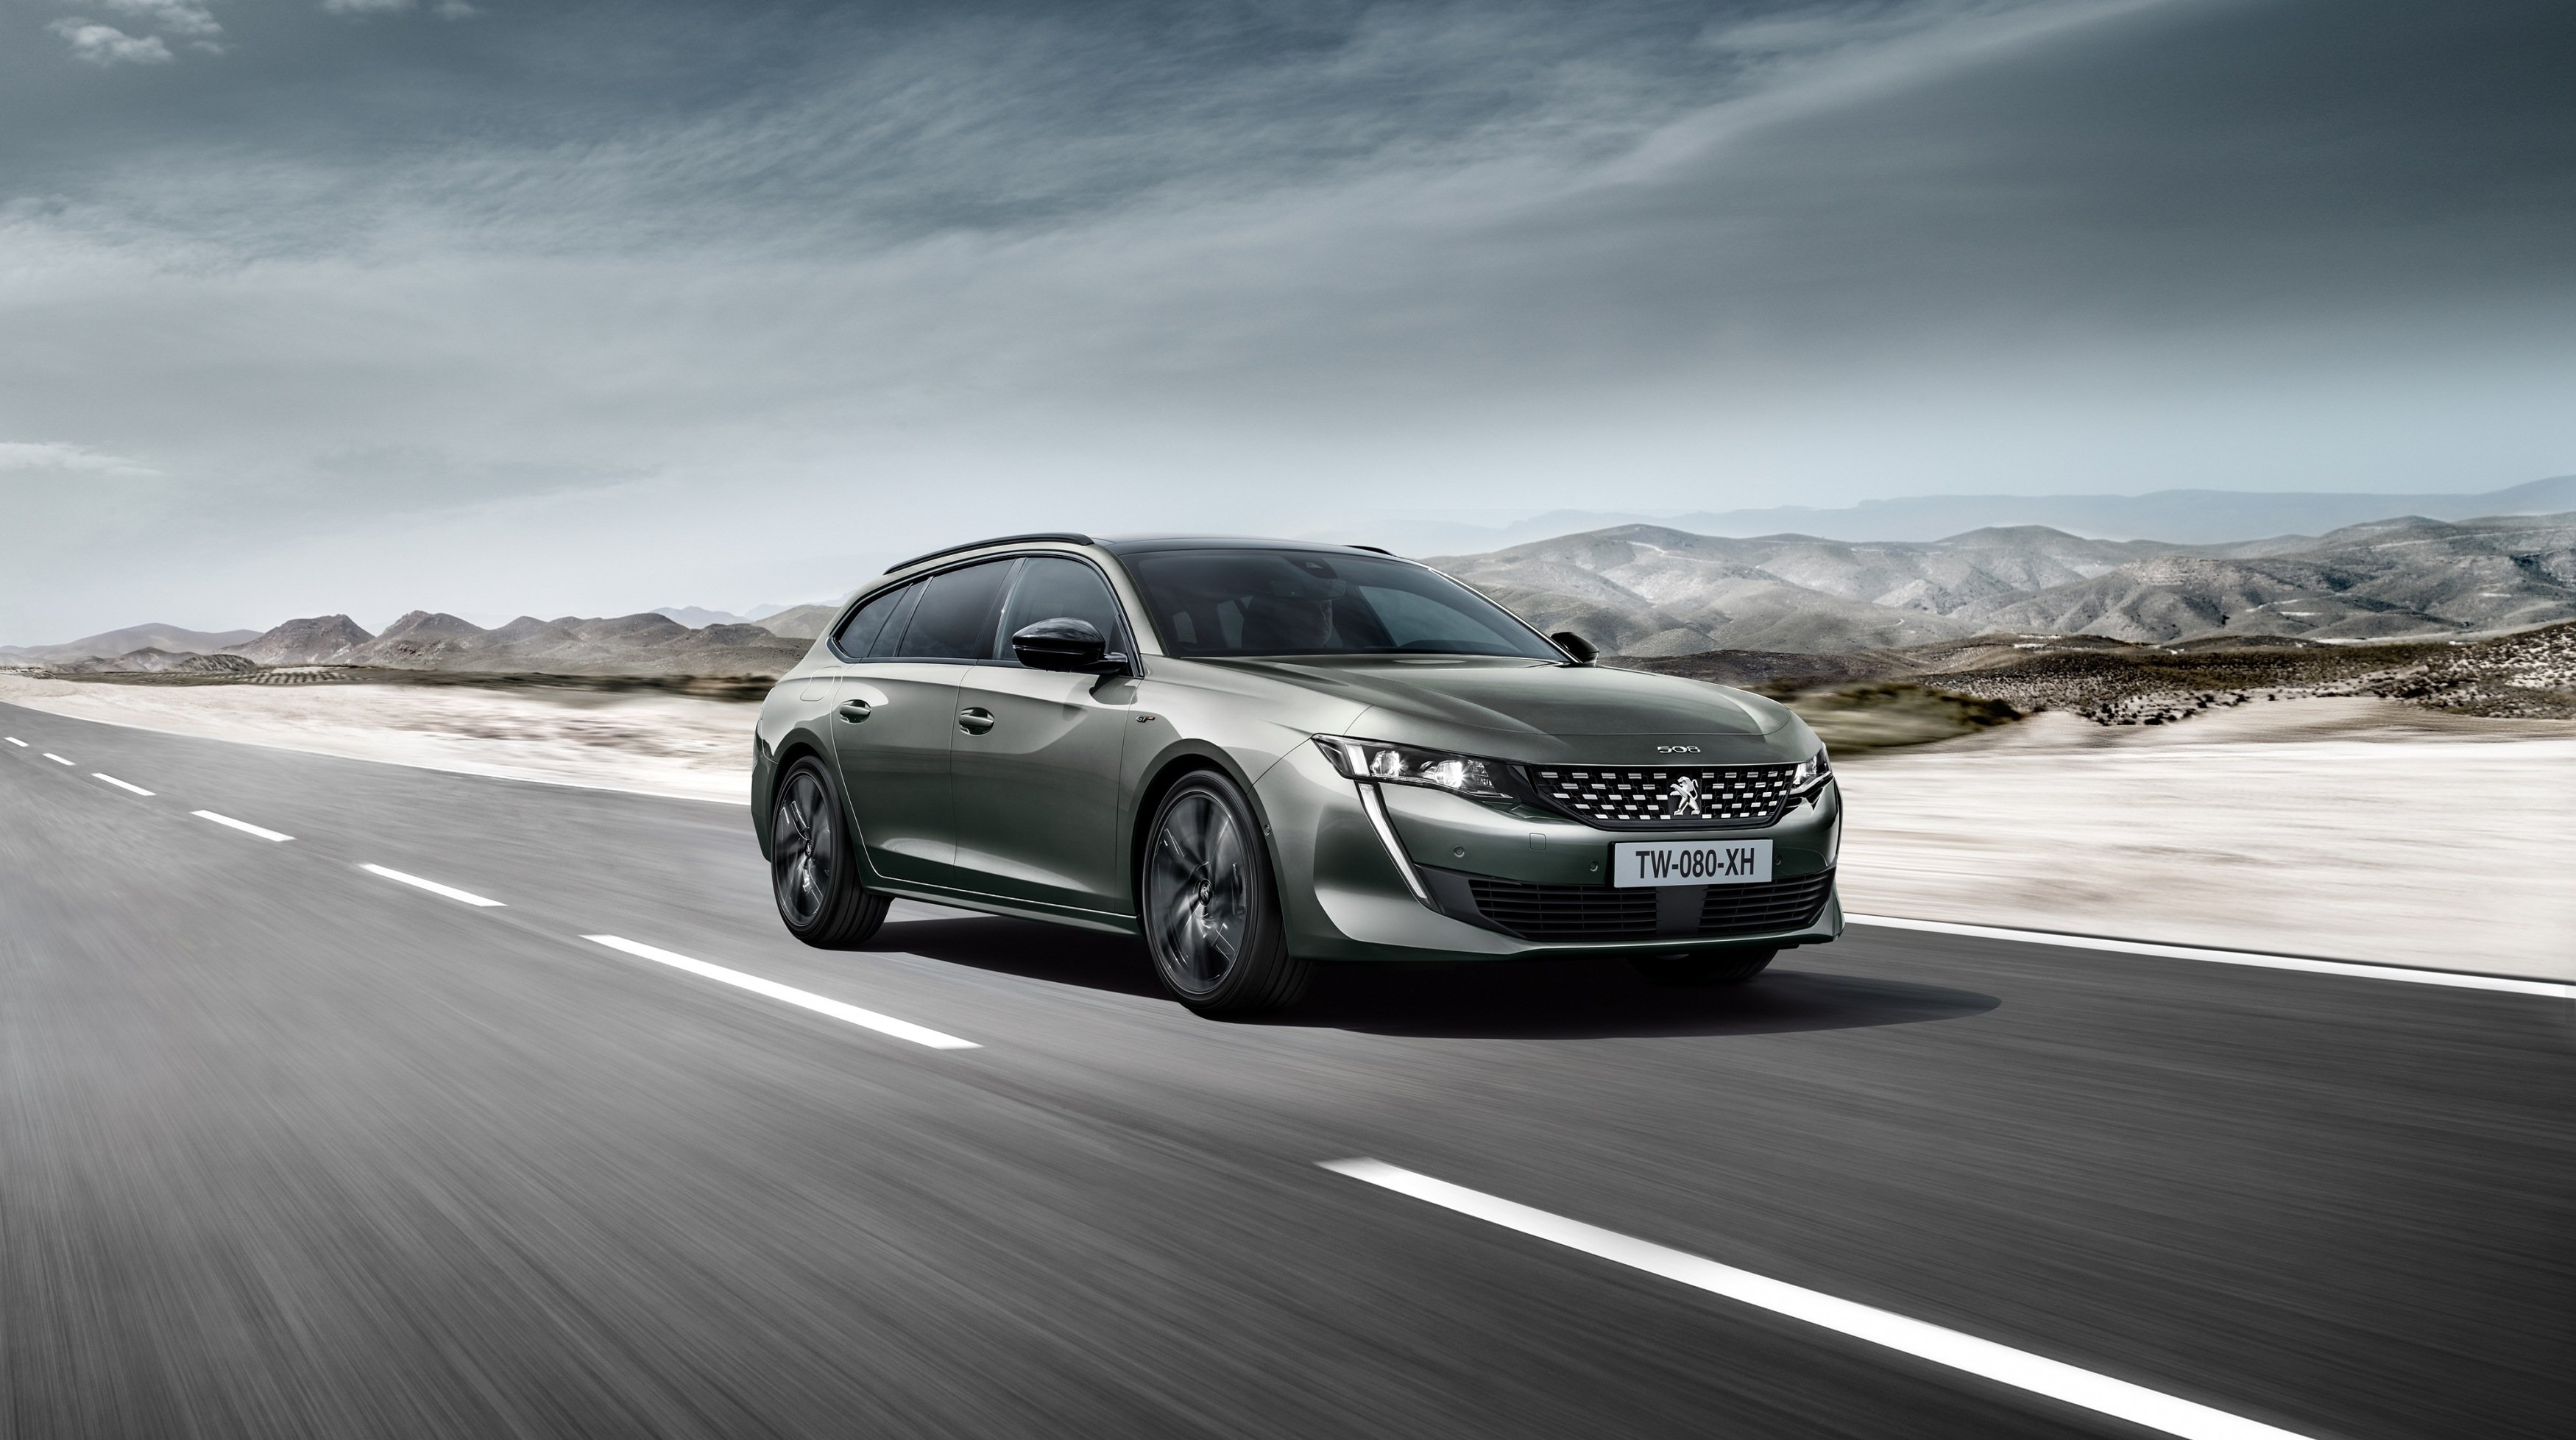 The new Peugeot 508 SW